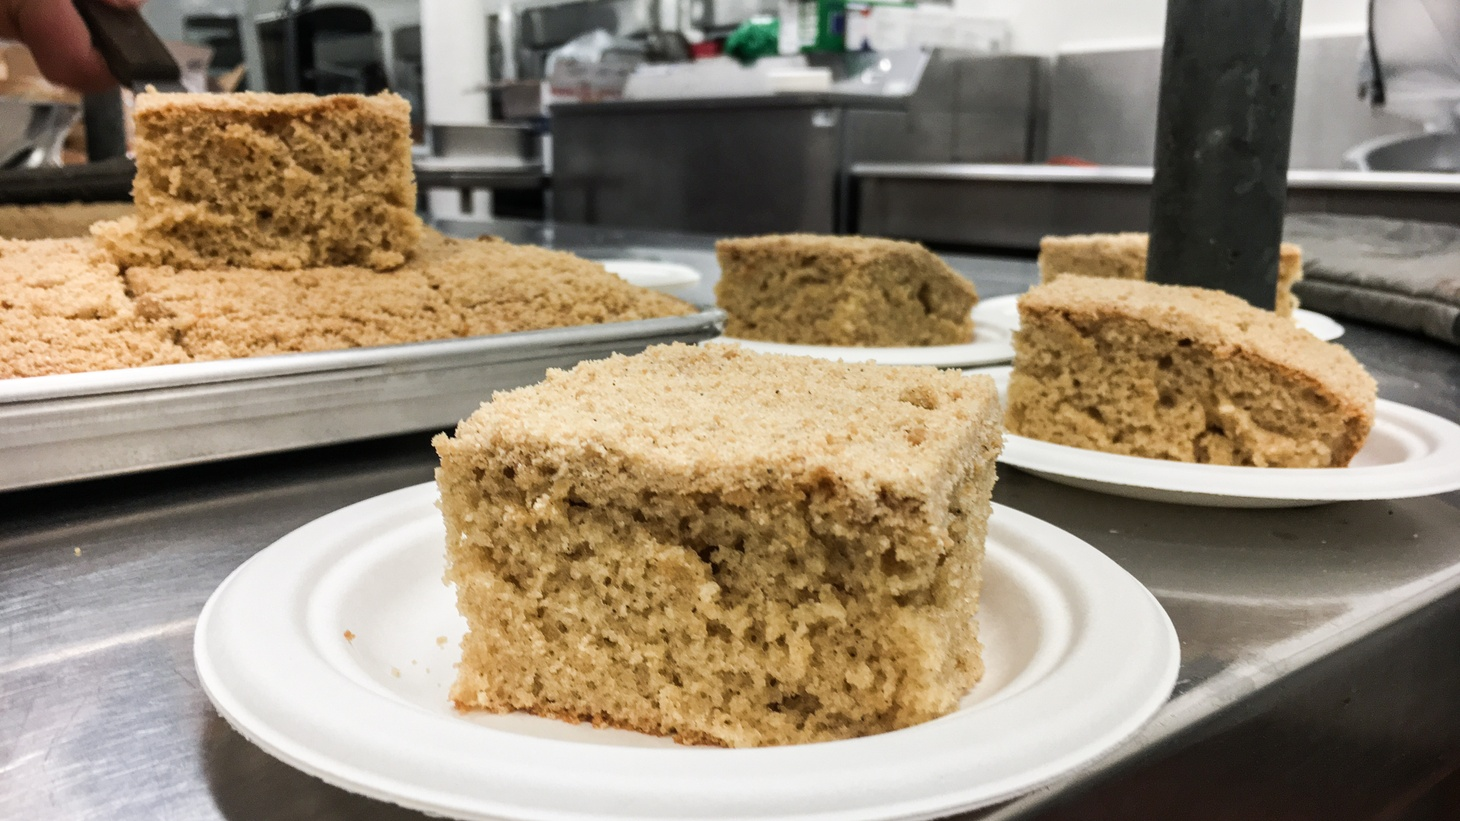 The LAUSD coffee cake.